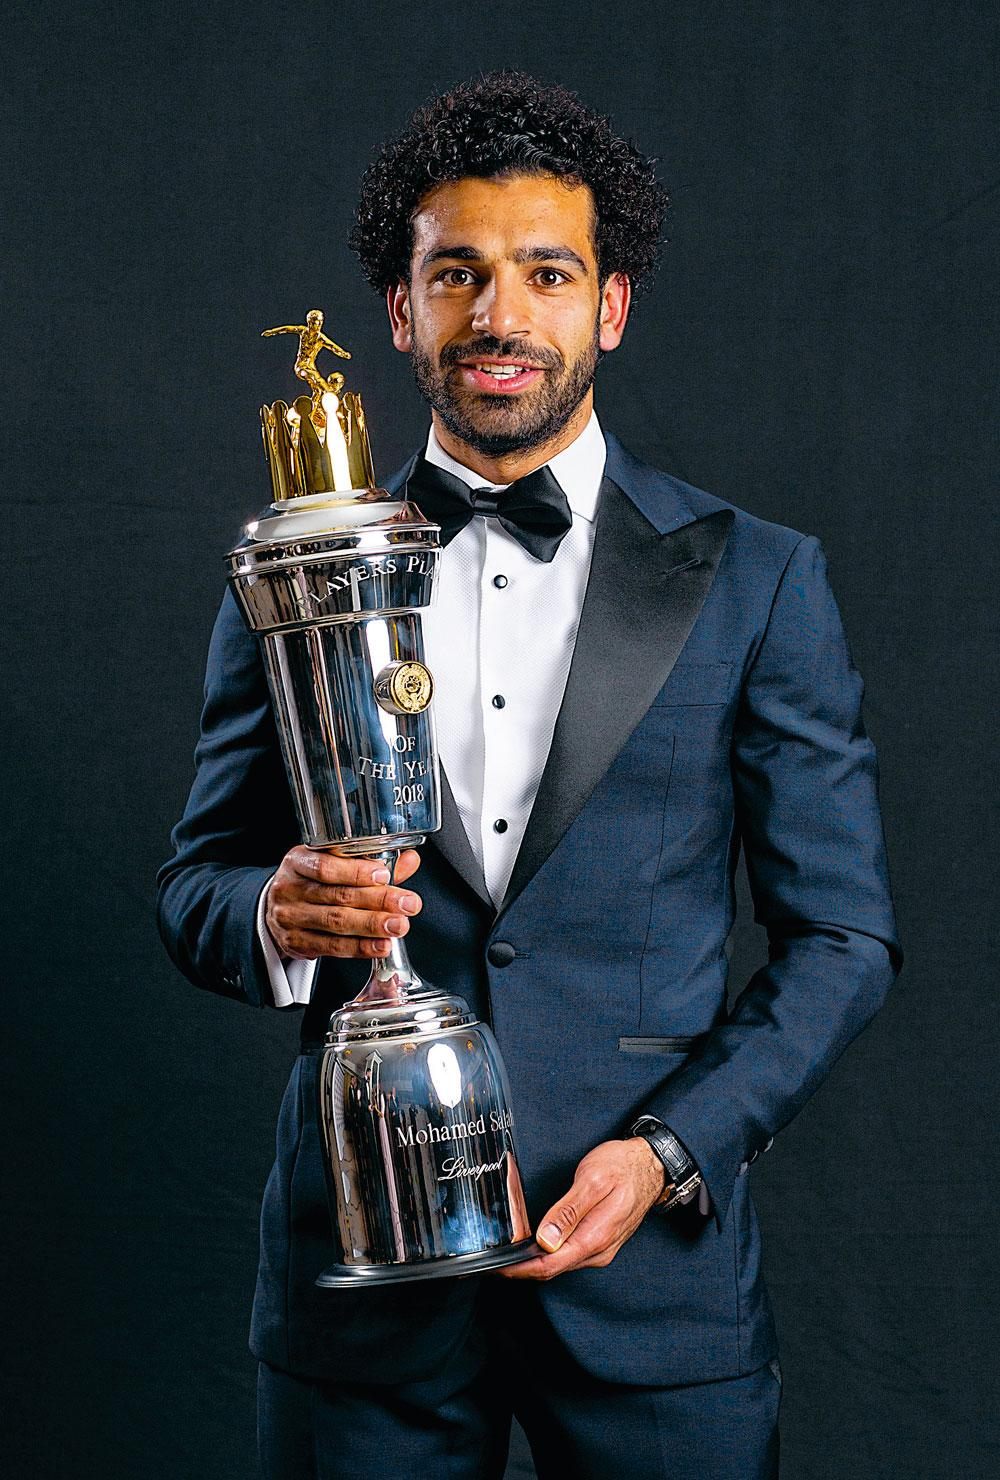 Mo Salah met zijn trofee van Player of the Year in de Premier League., BELGAIMAGE